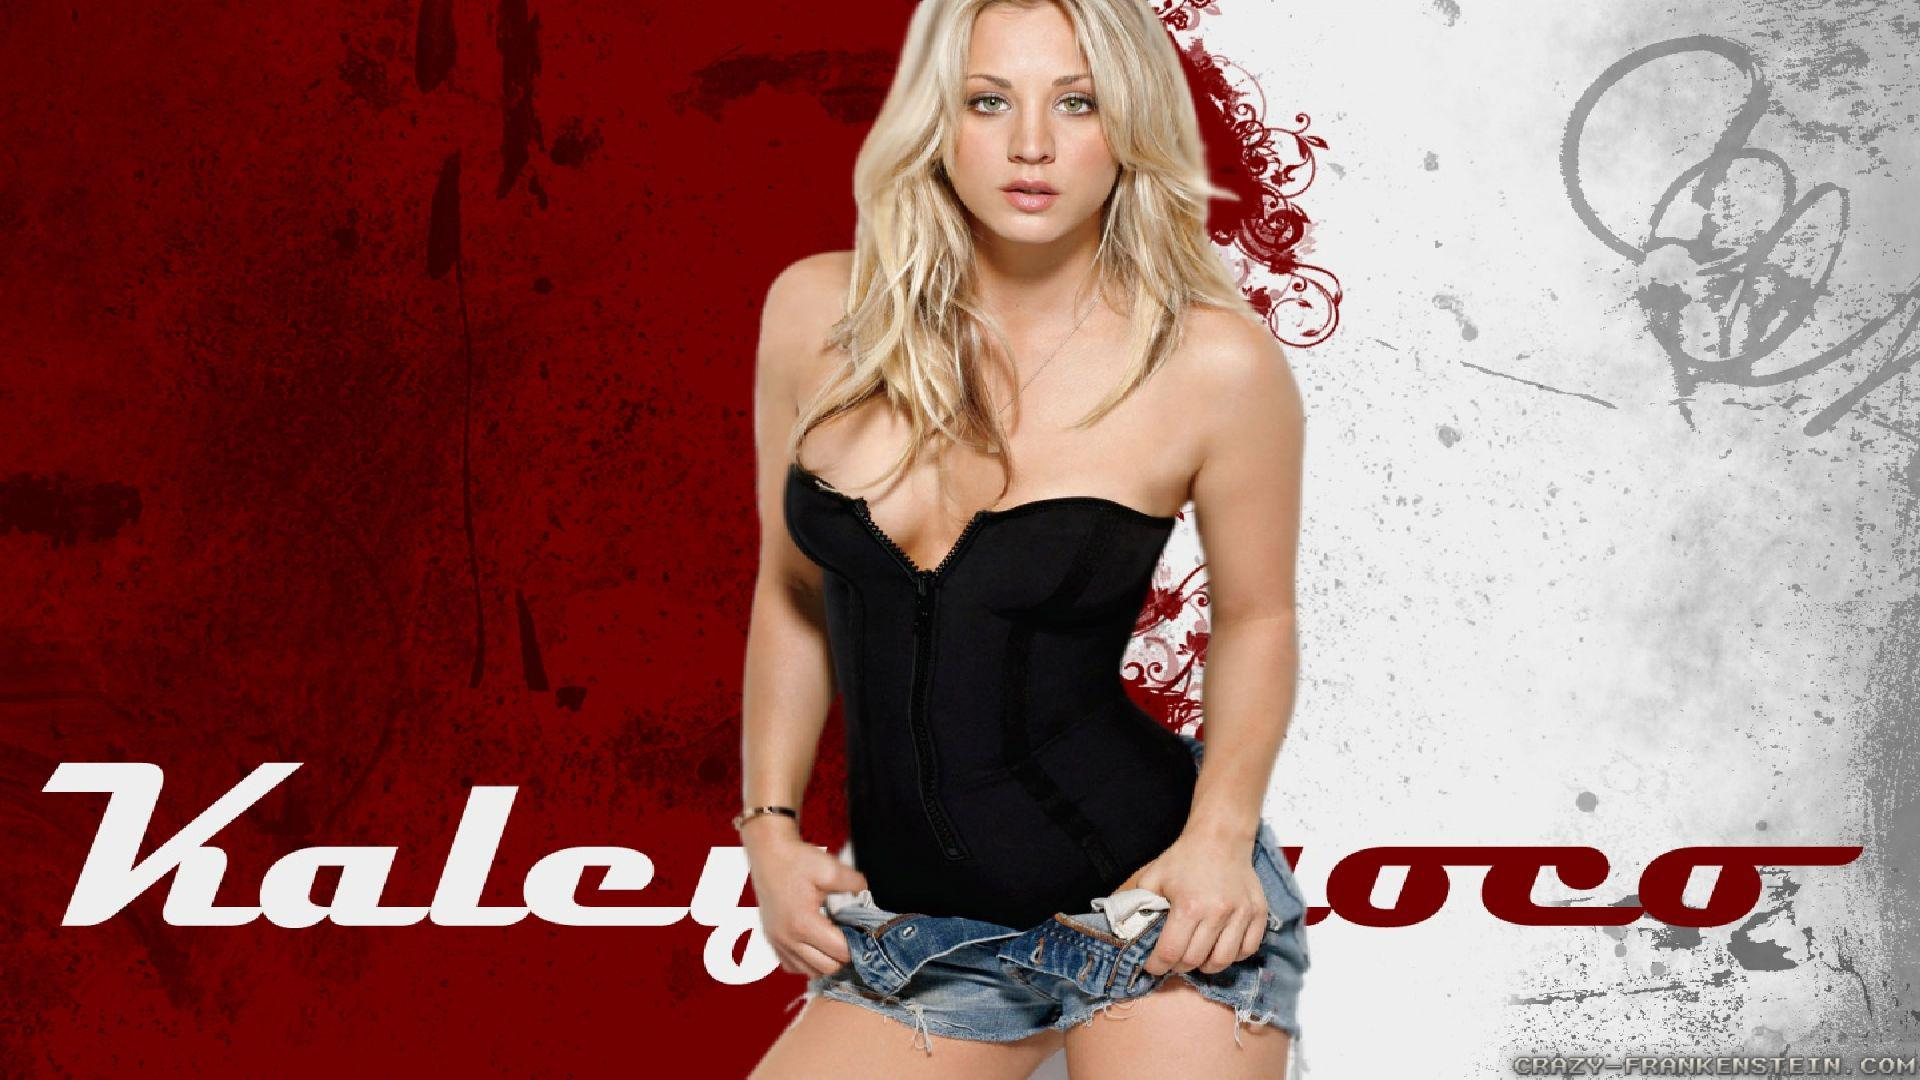 Kaley Cuoco Images 777512 1920x1080